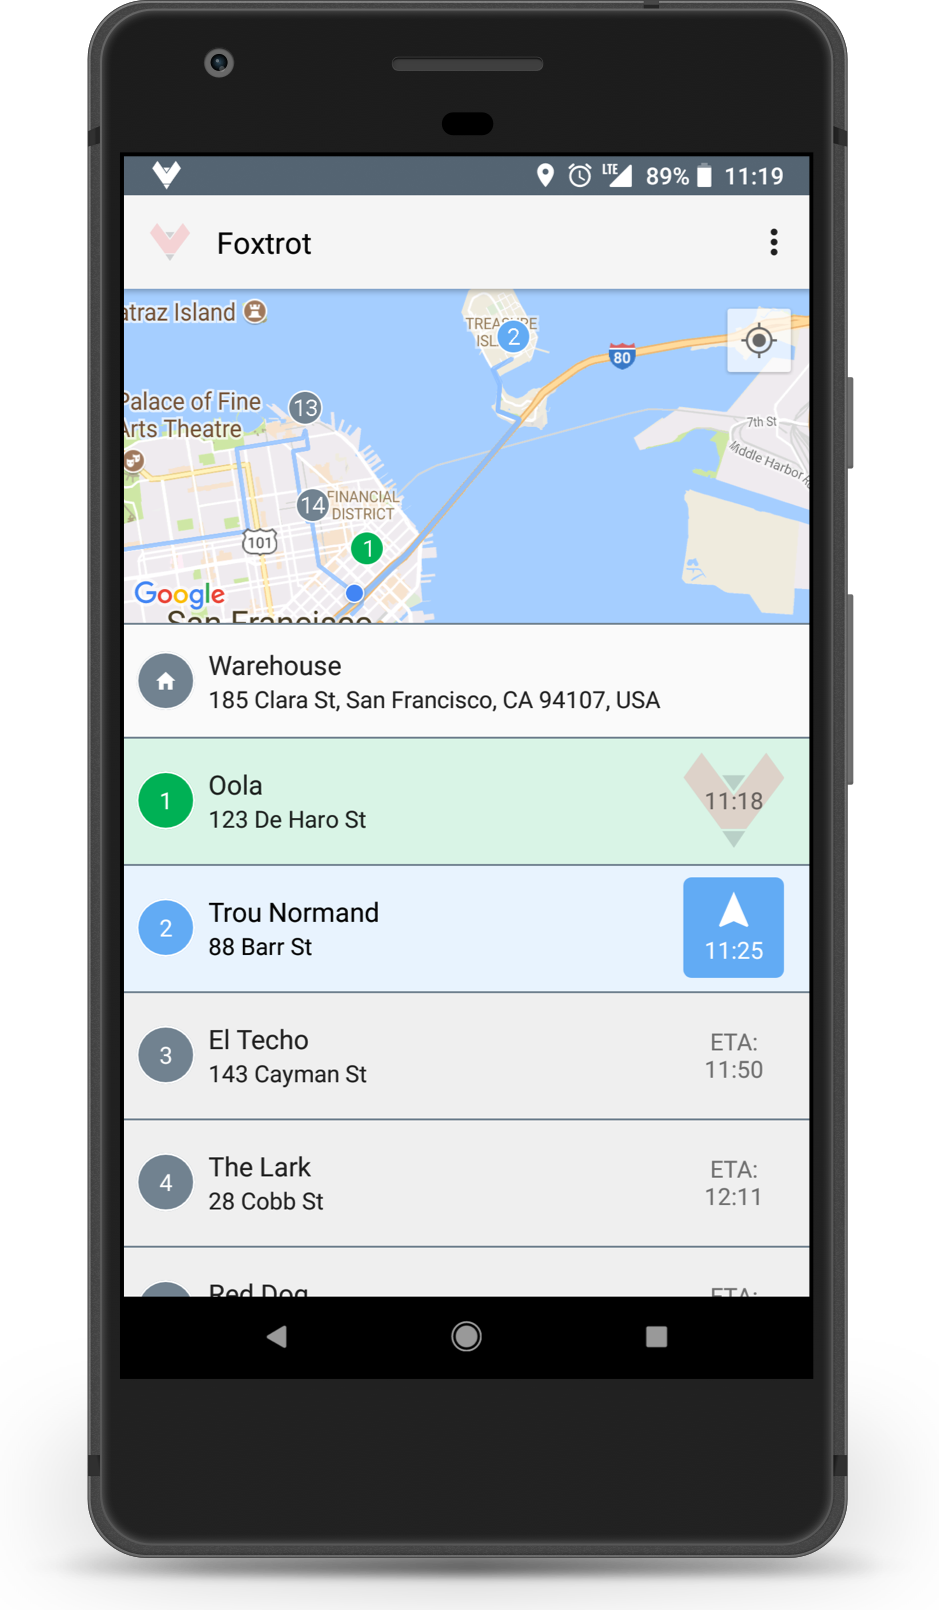 Foxtrot driver app which shows the driver's stop list and optimized route on a map.